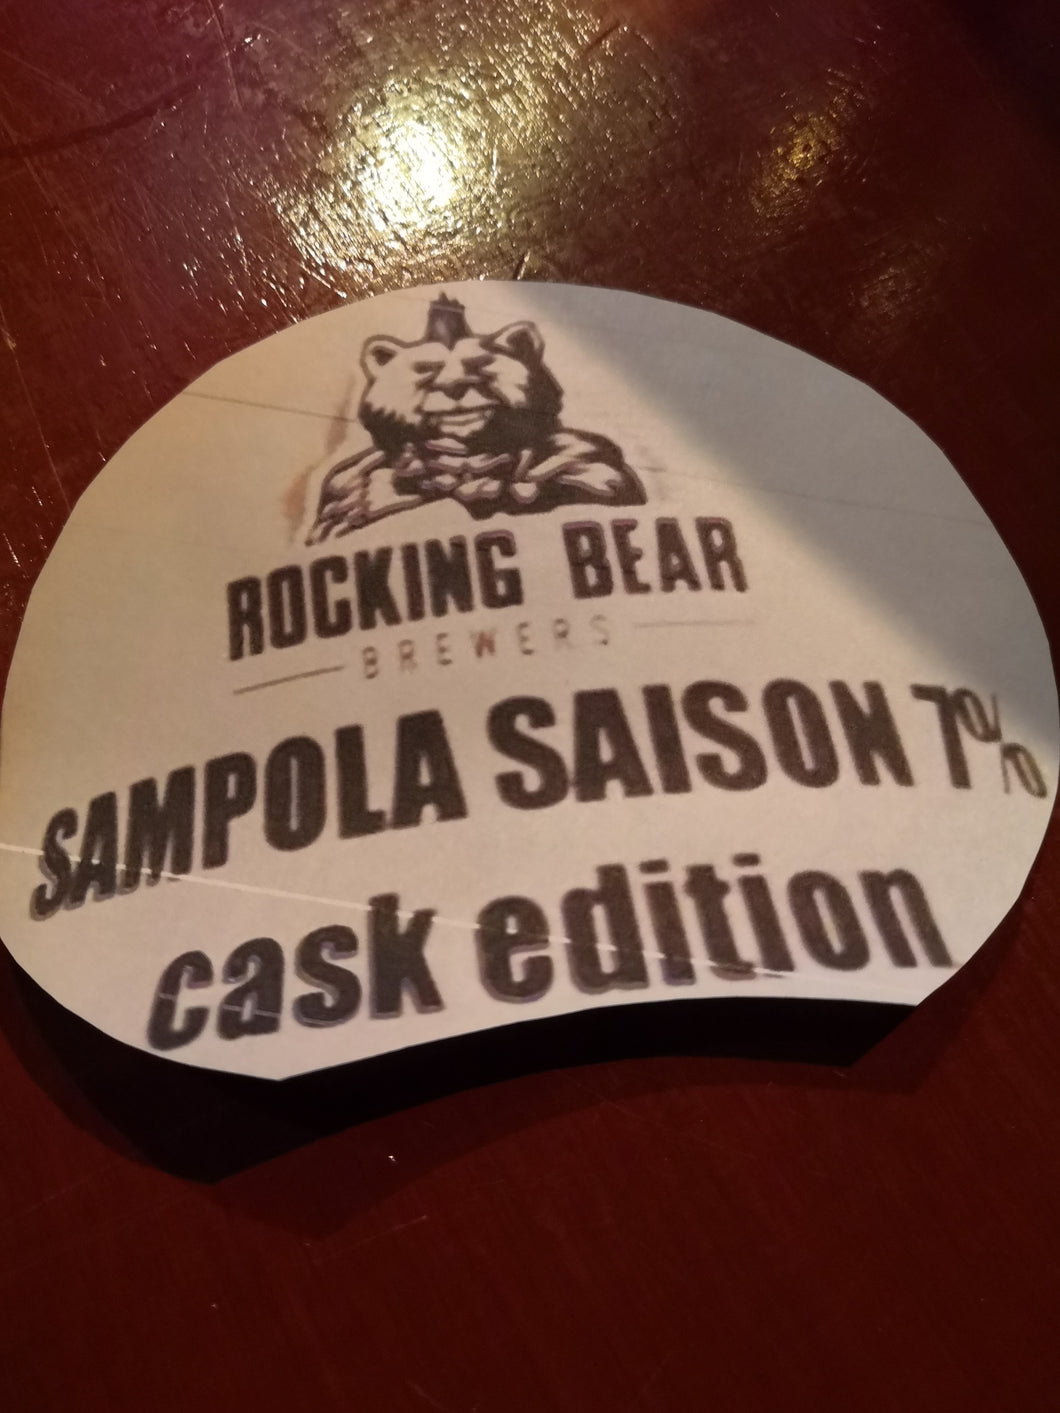 Rocking Bear Sampola Saison Cask Edition